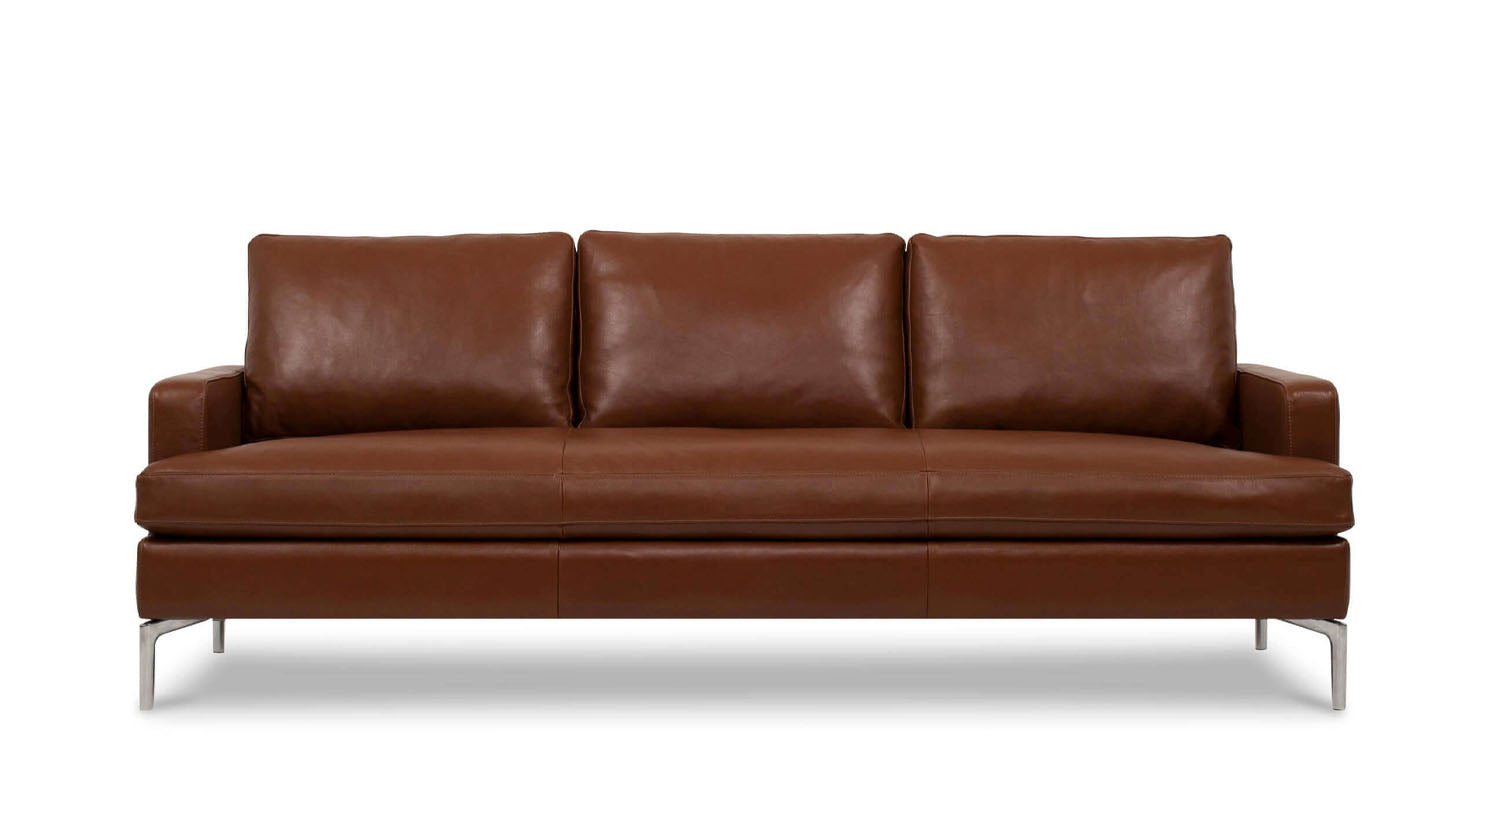 eve sofa - leather